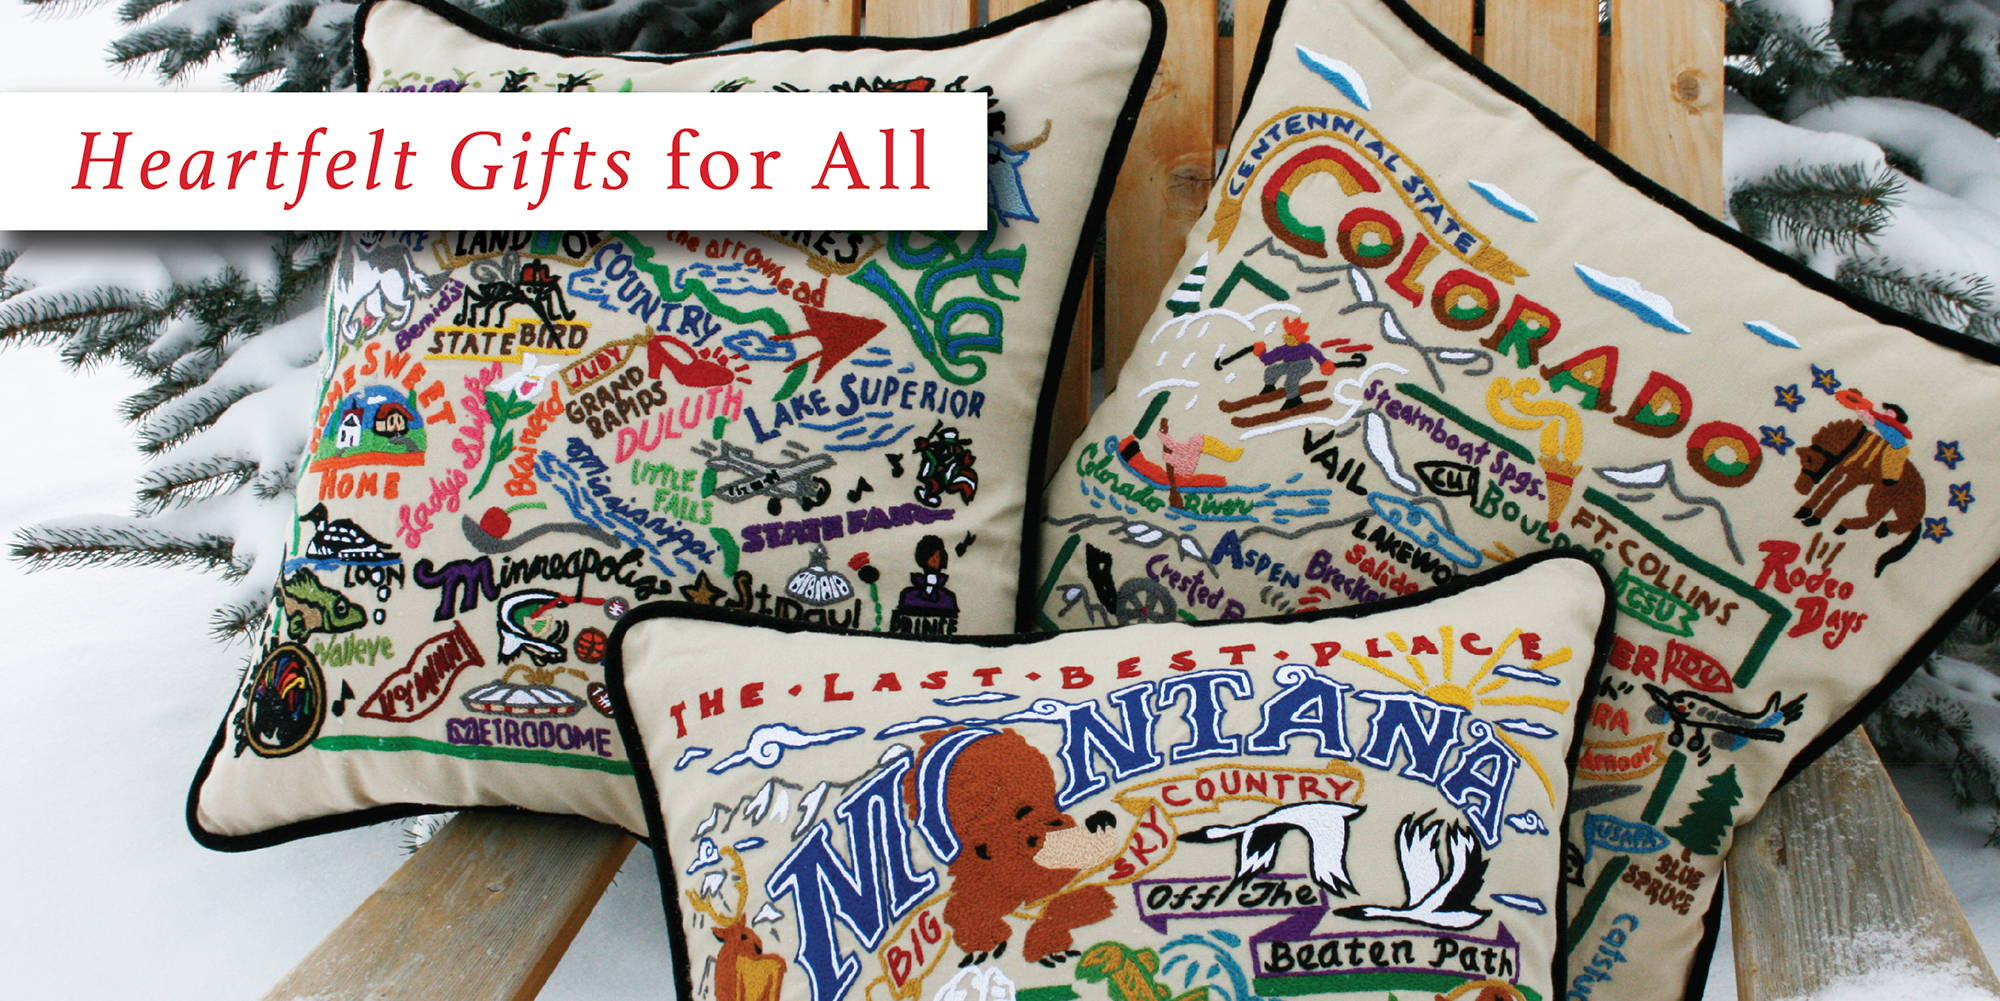 Minnesota, Colorado, and Montana hand-embroidered pillows in an adirondack chair in the snow